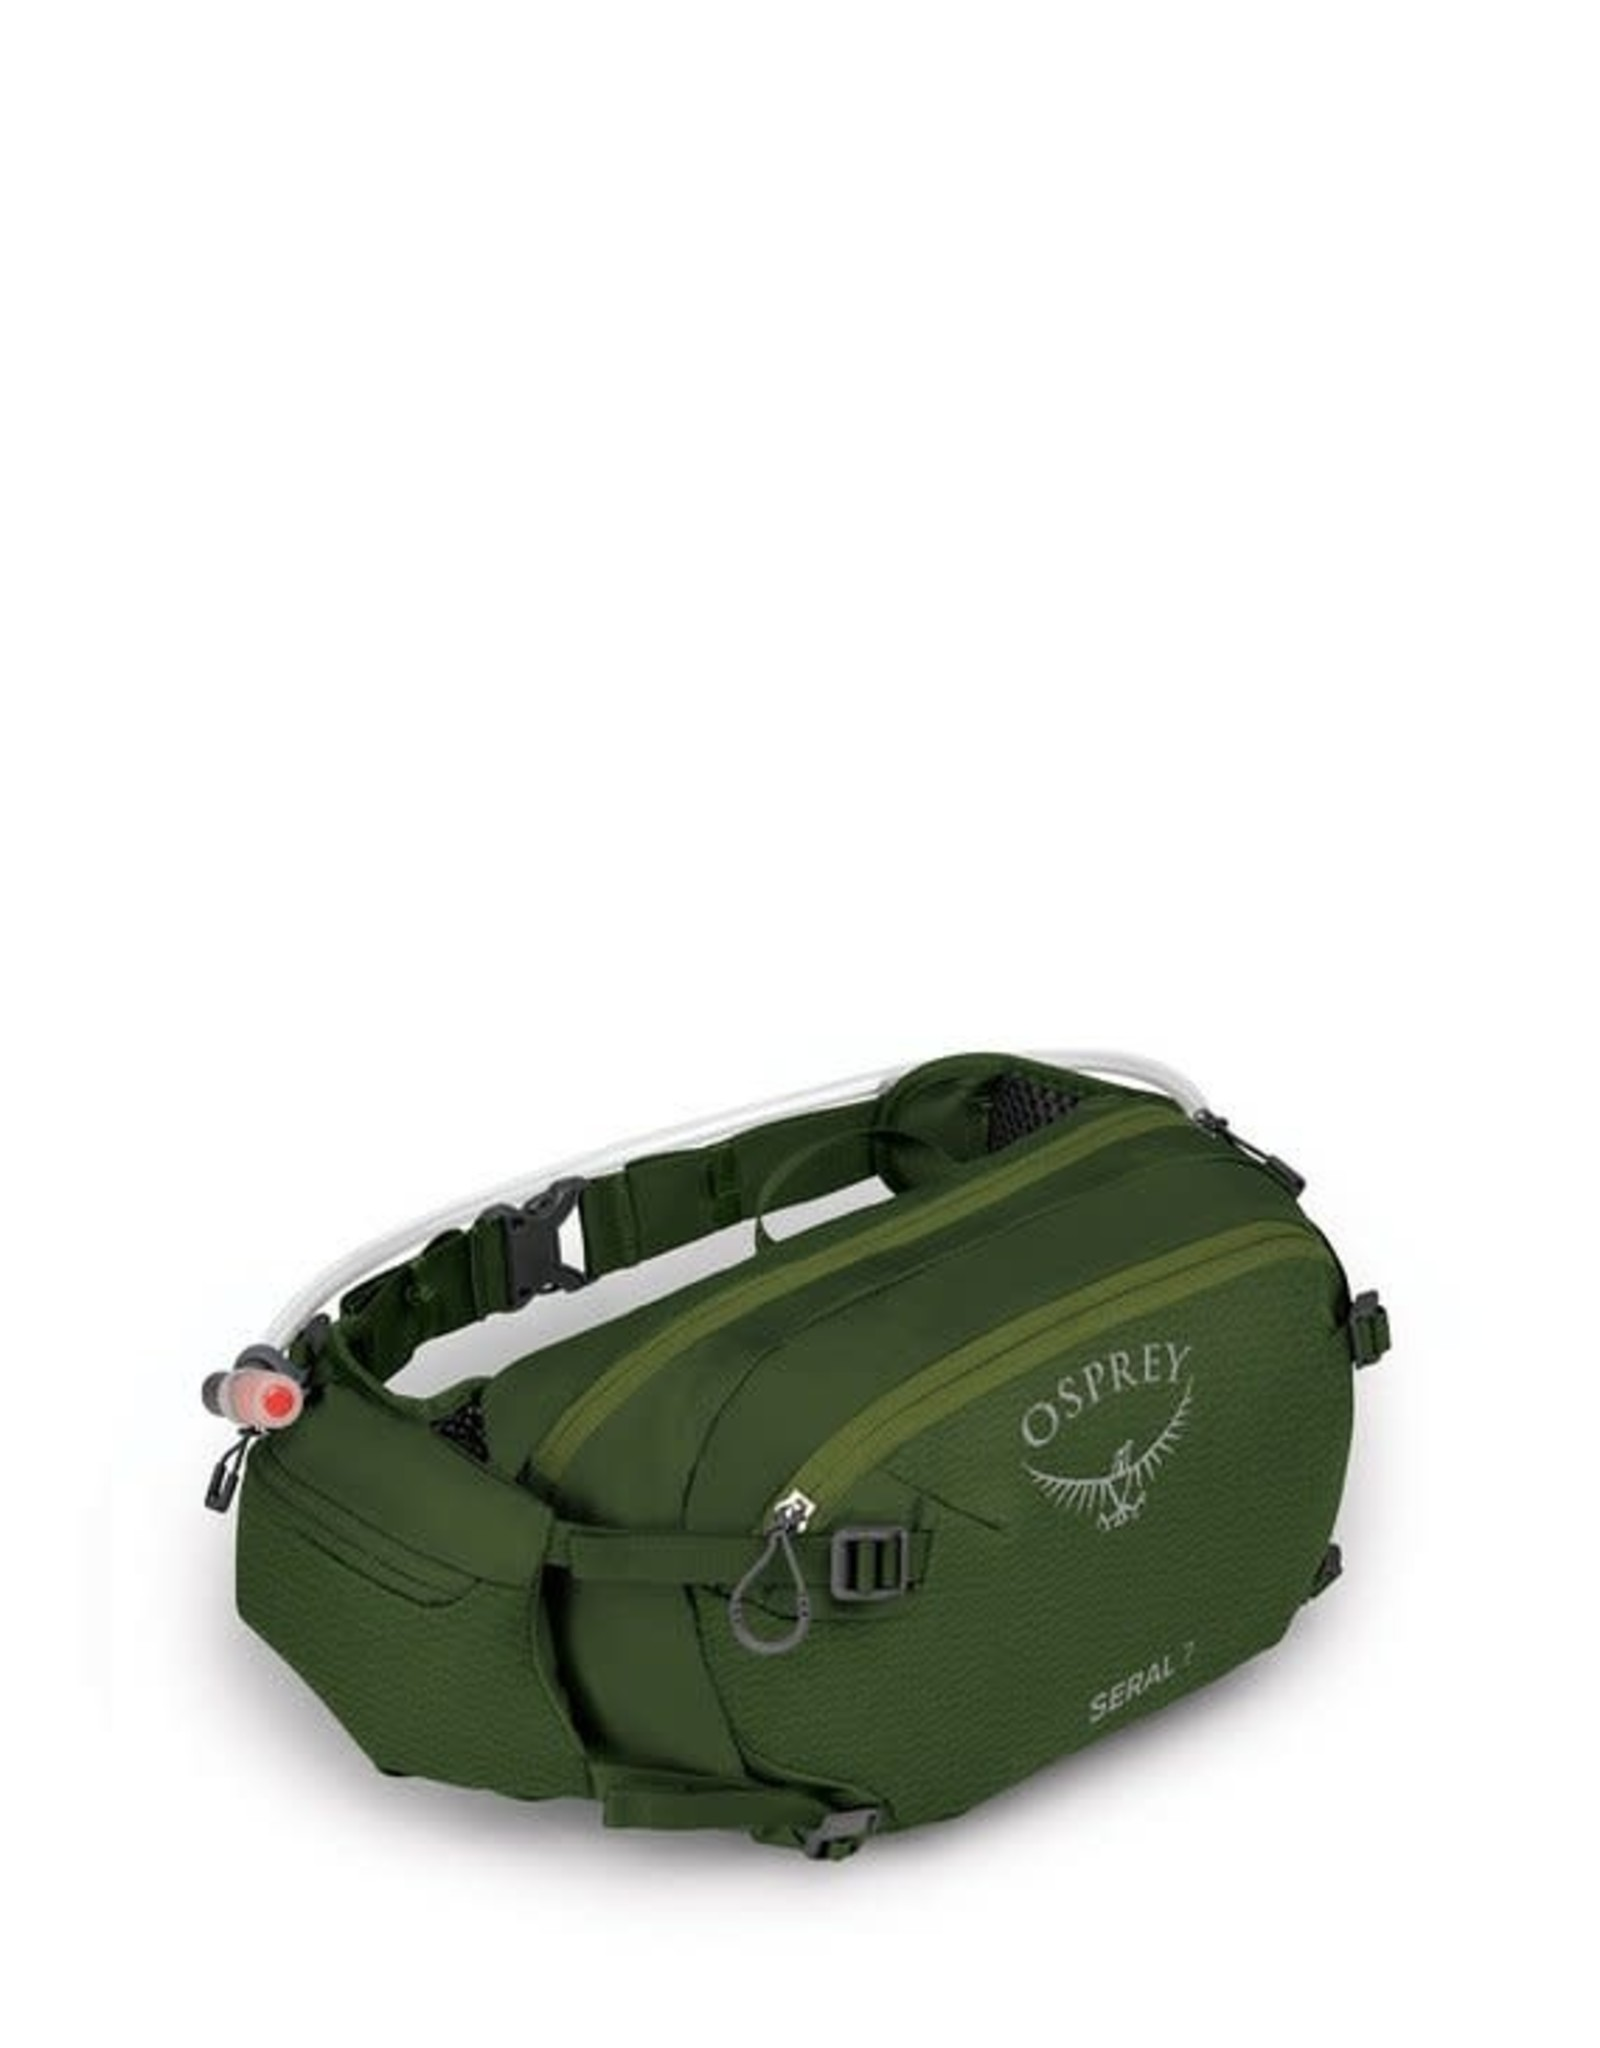 Osprey Osprey Seral 7 Lumbar Pack - Green, One Size